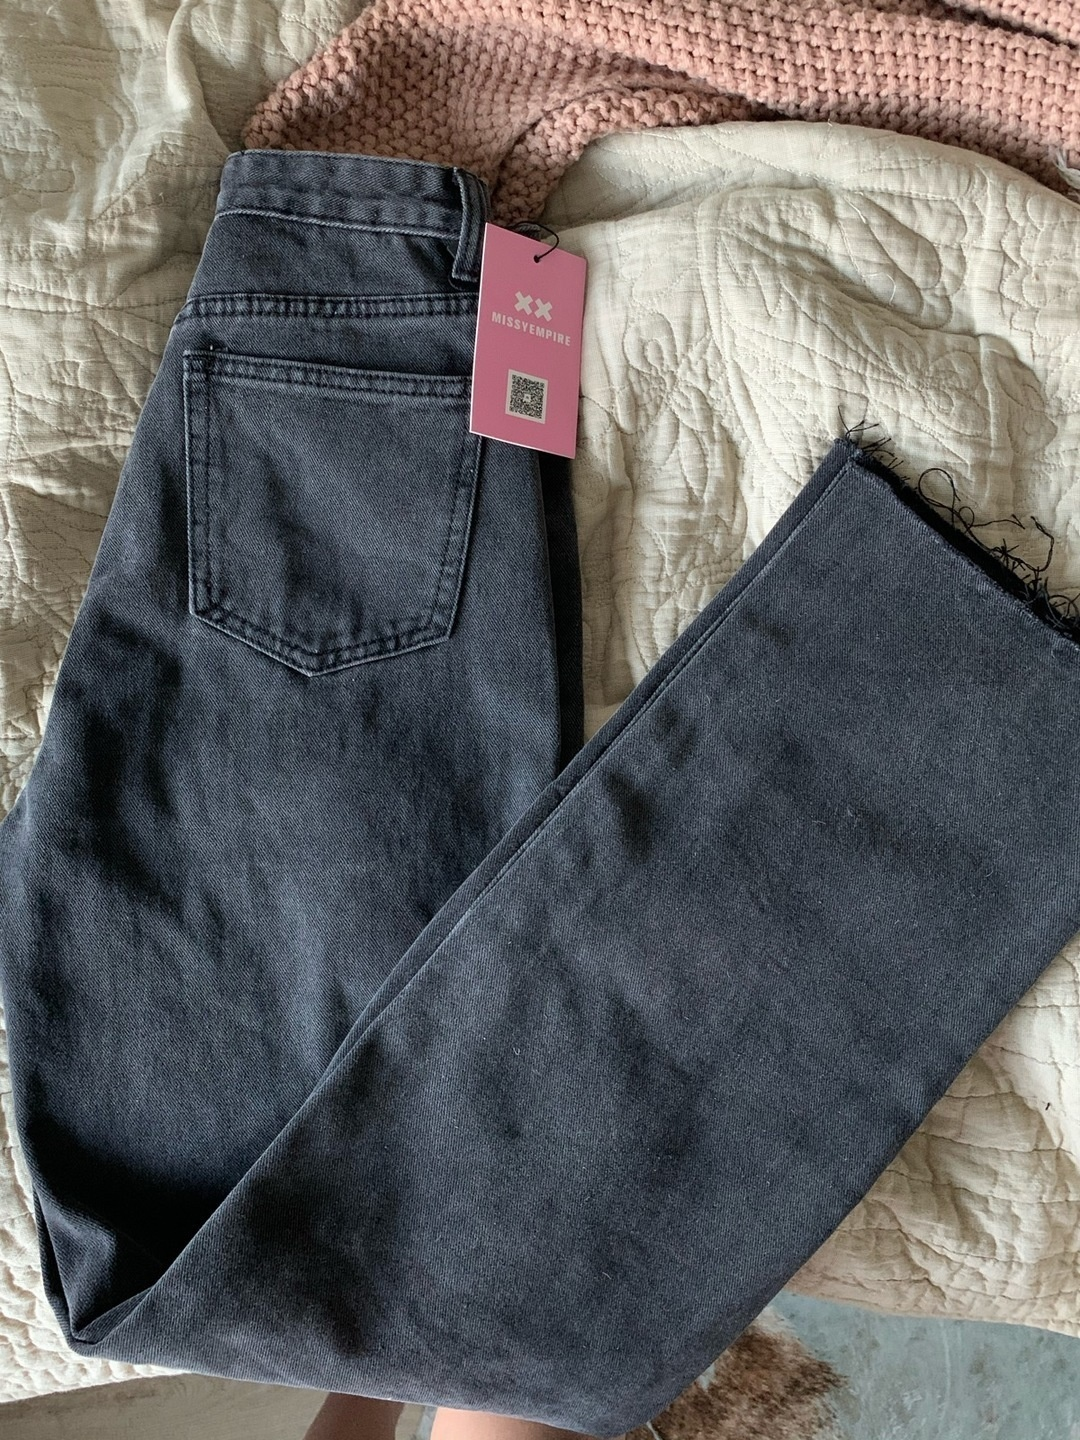 Women's trousers & jeans - MISSY EMPIRE photo 2